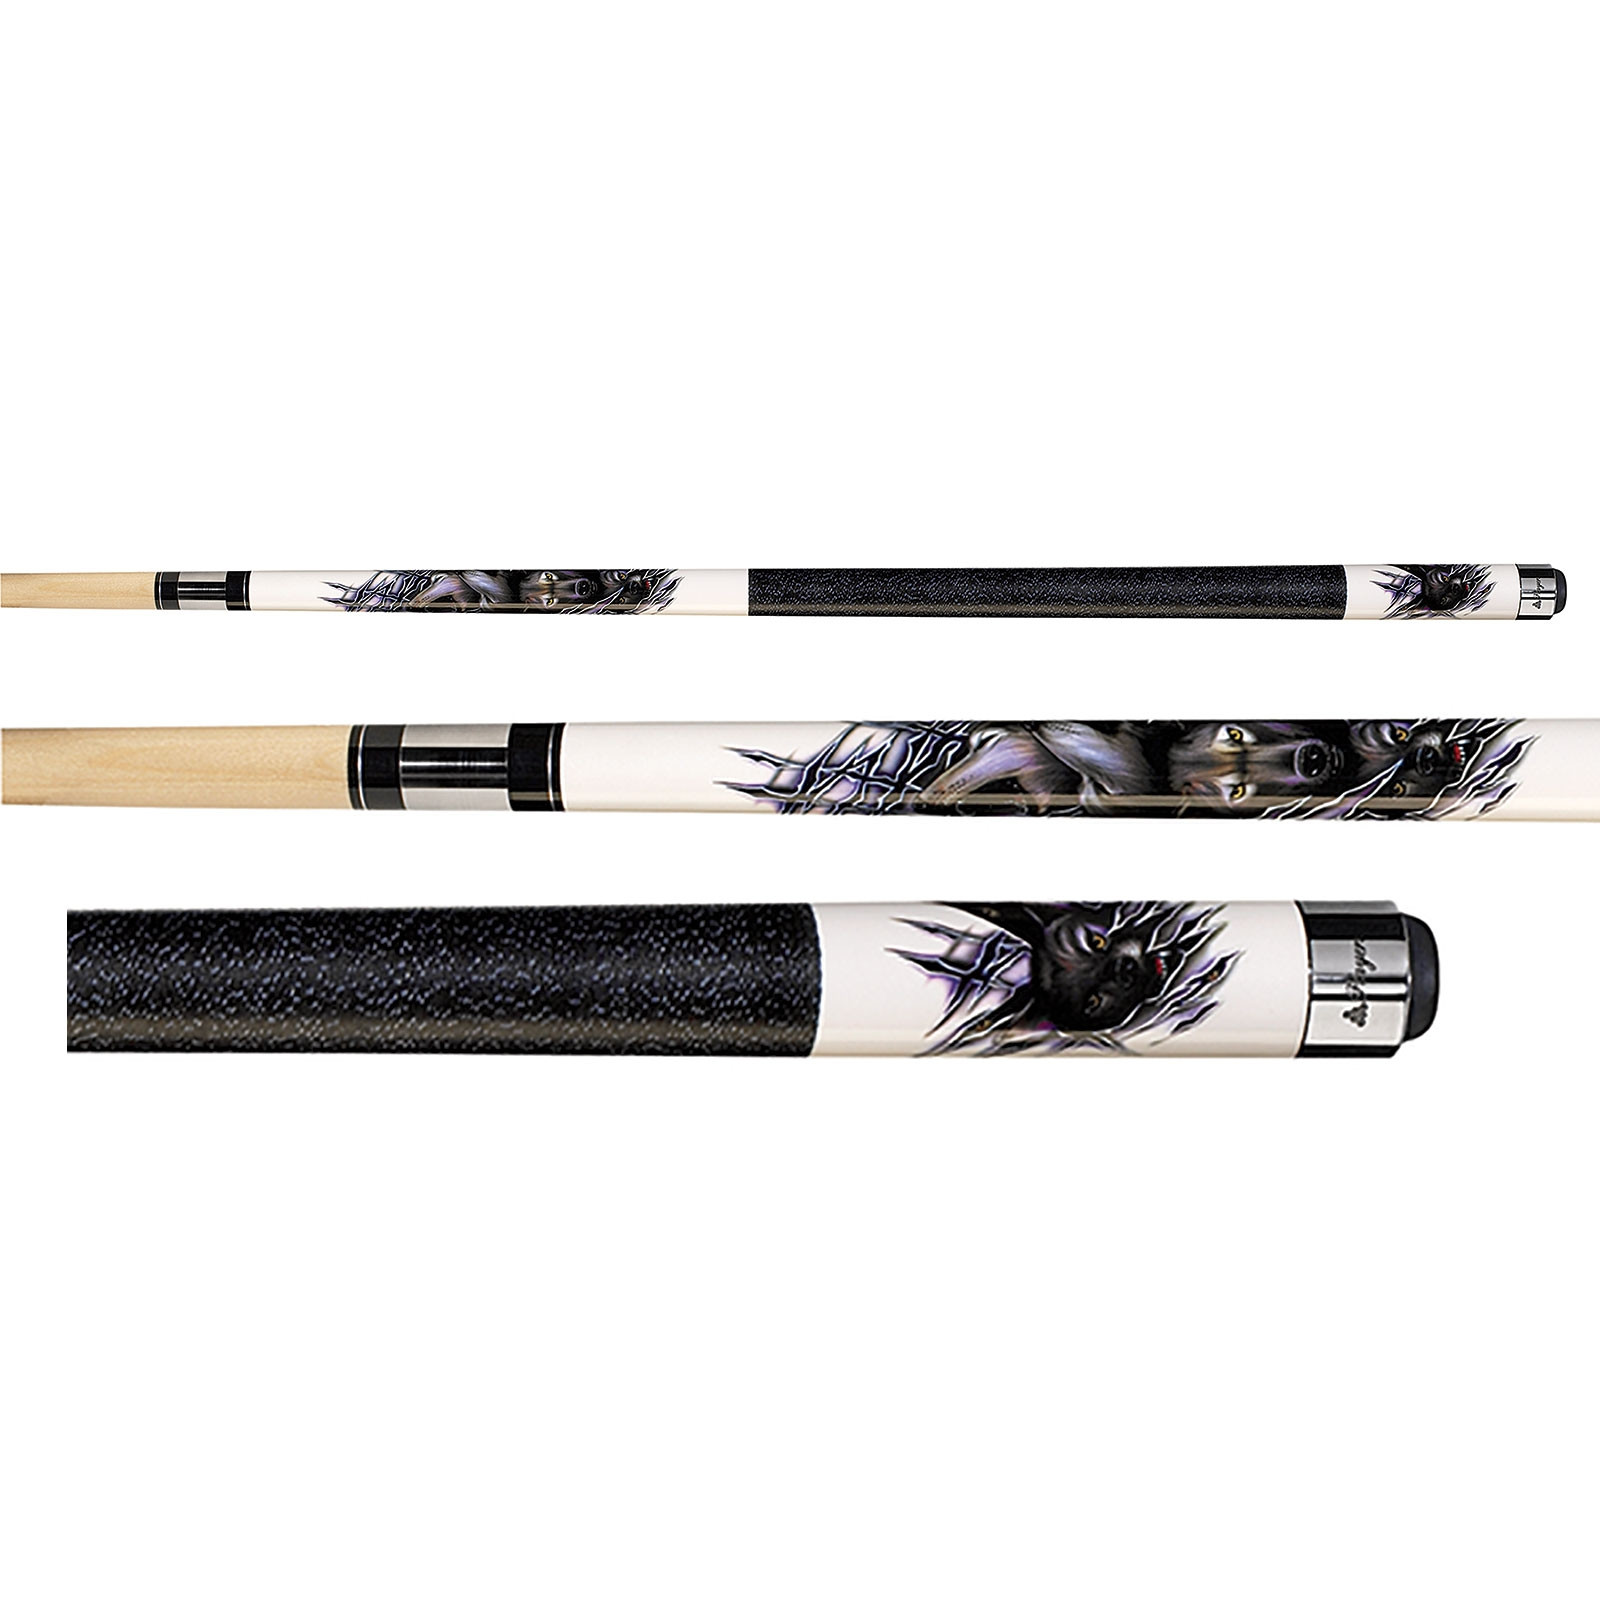 Players D-CWWP Howling Wolves Graphic Pool Cue Stick